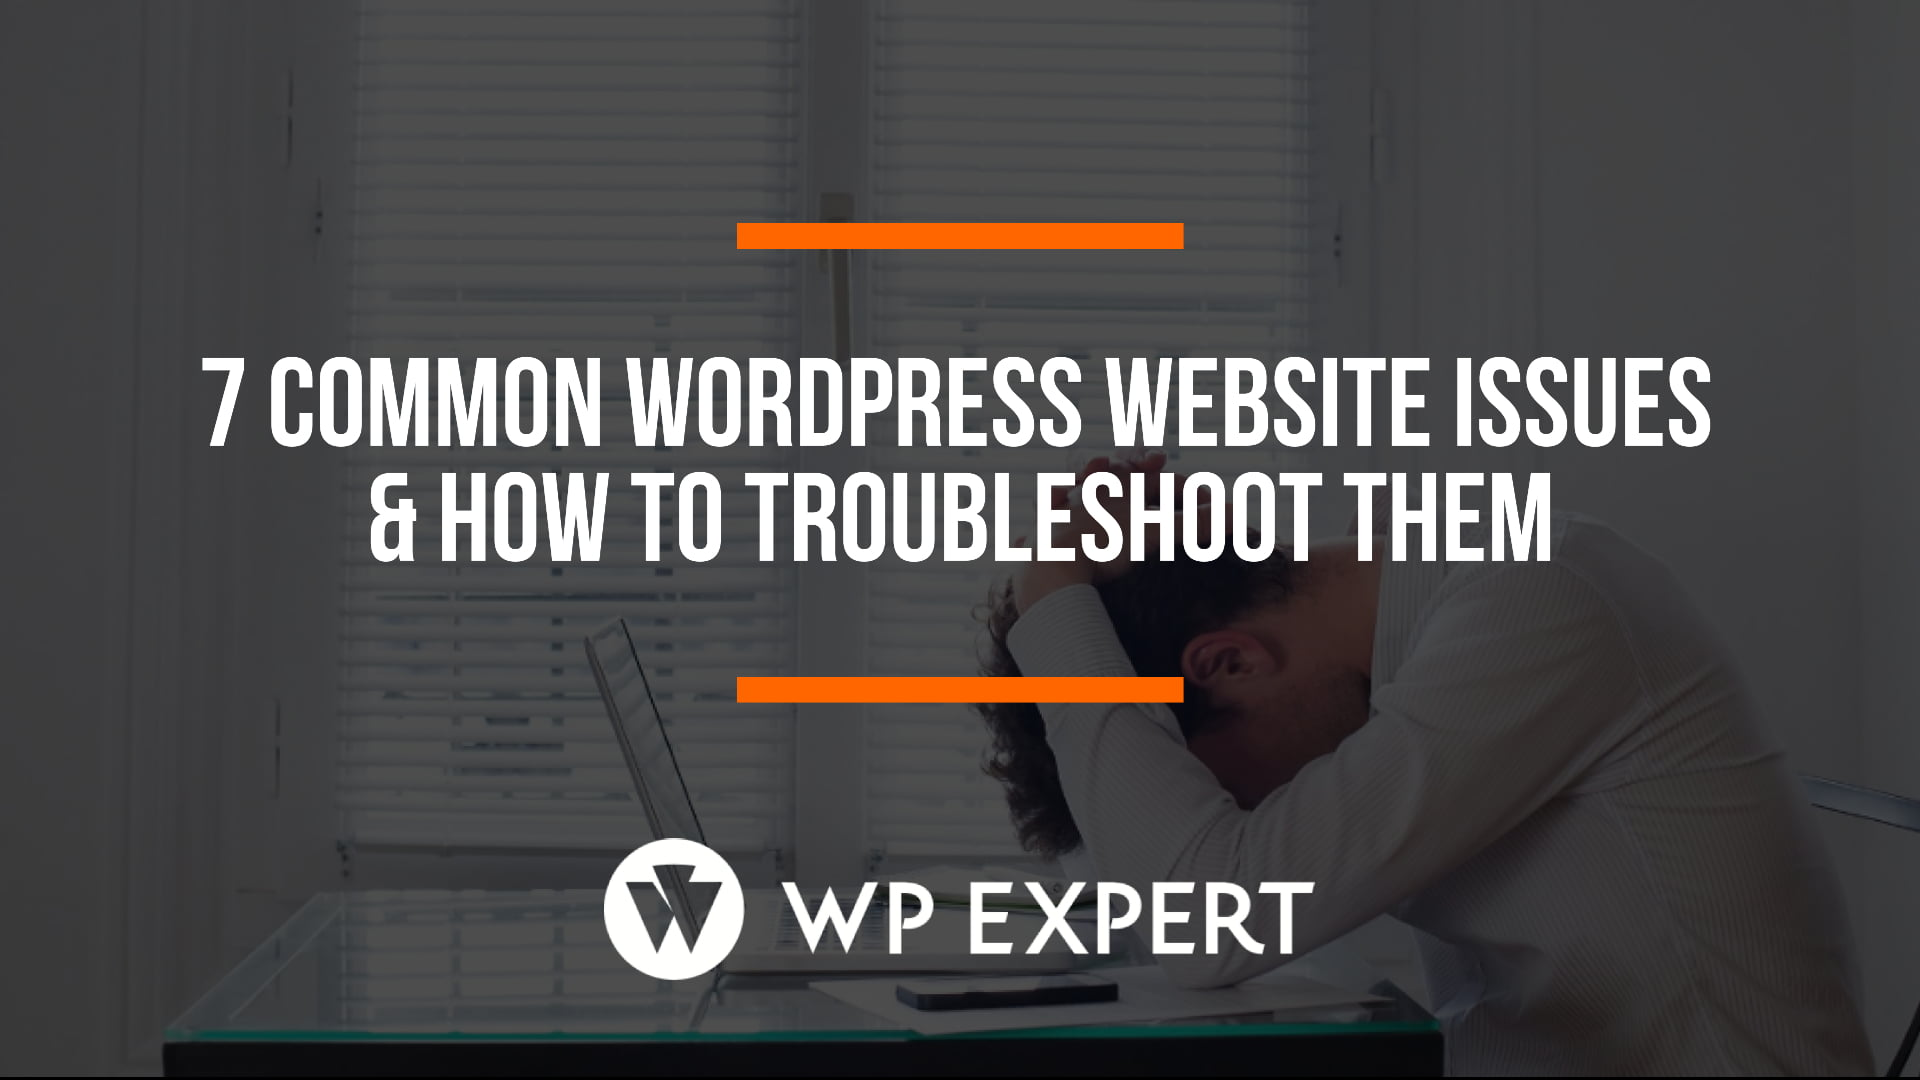 7 Common Wordpress Website Issues & How to Troubleshoot Them